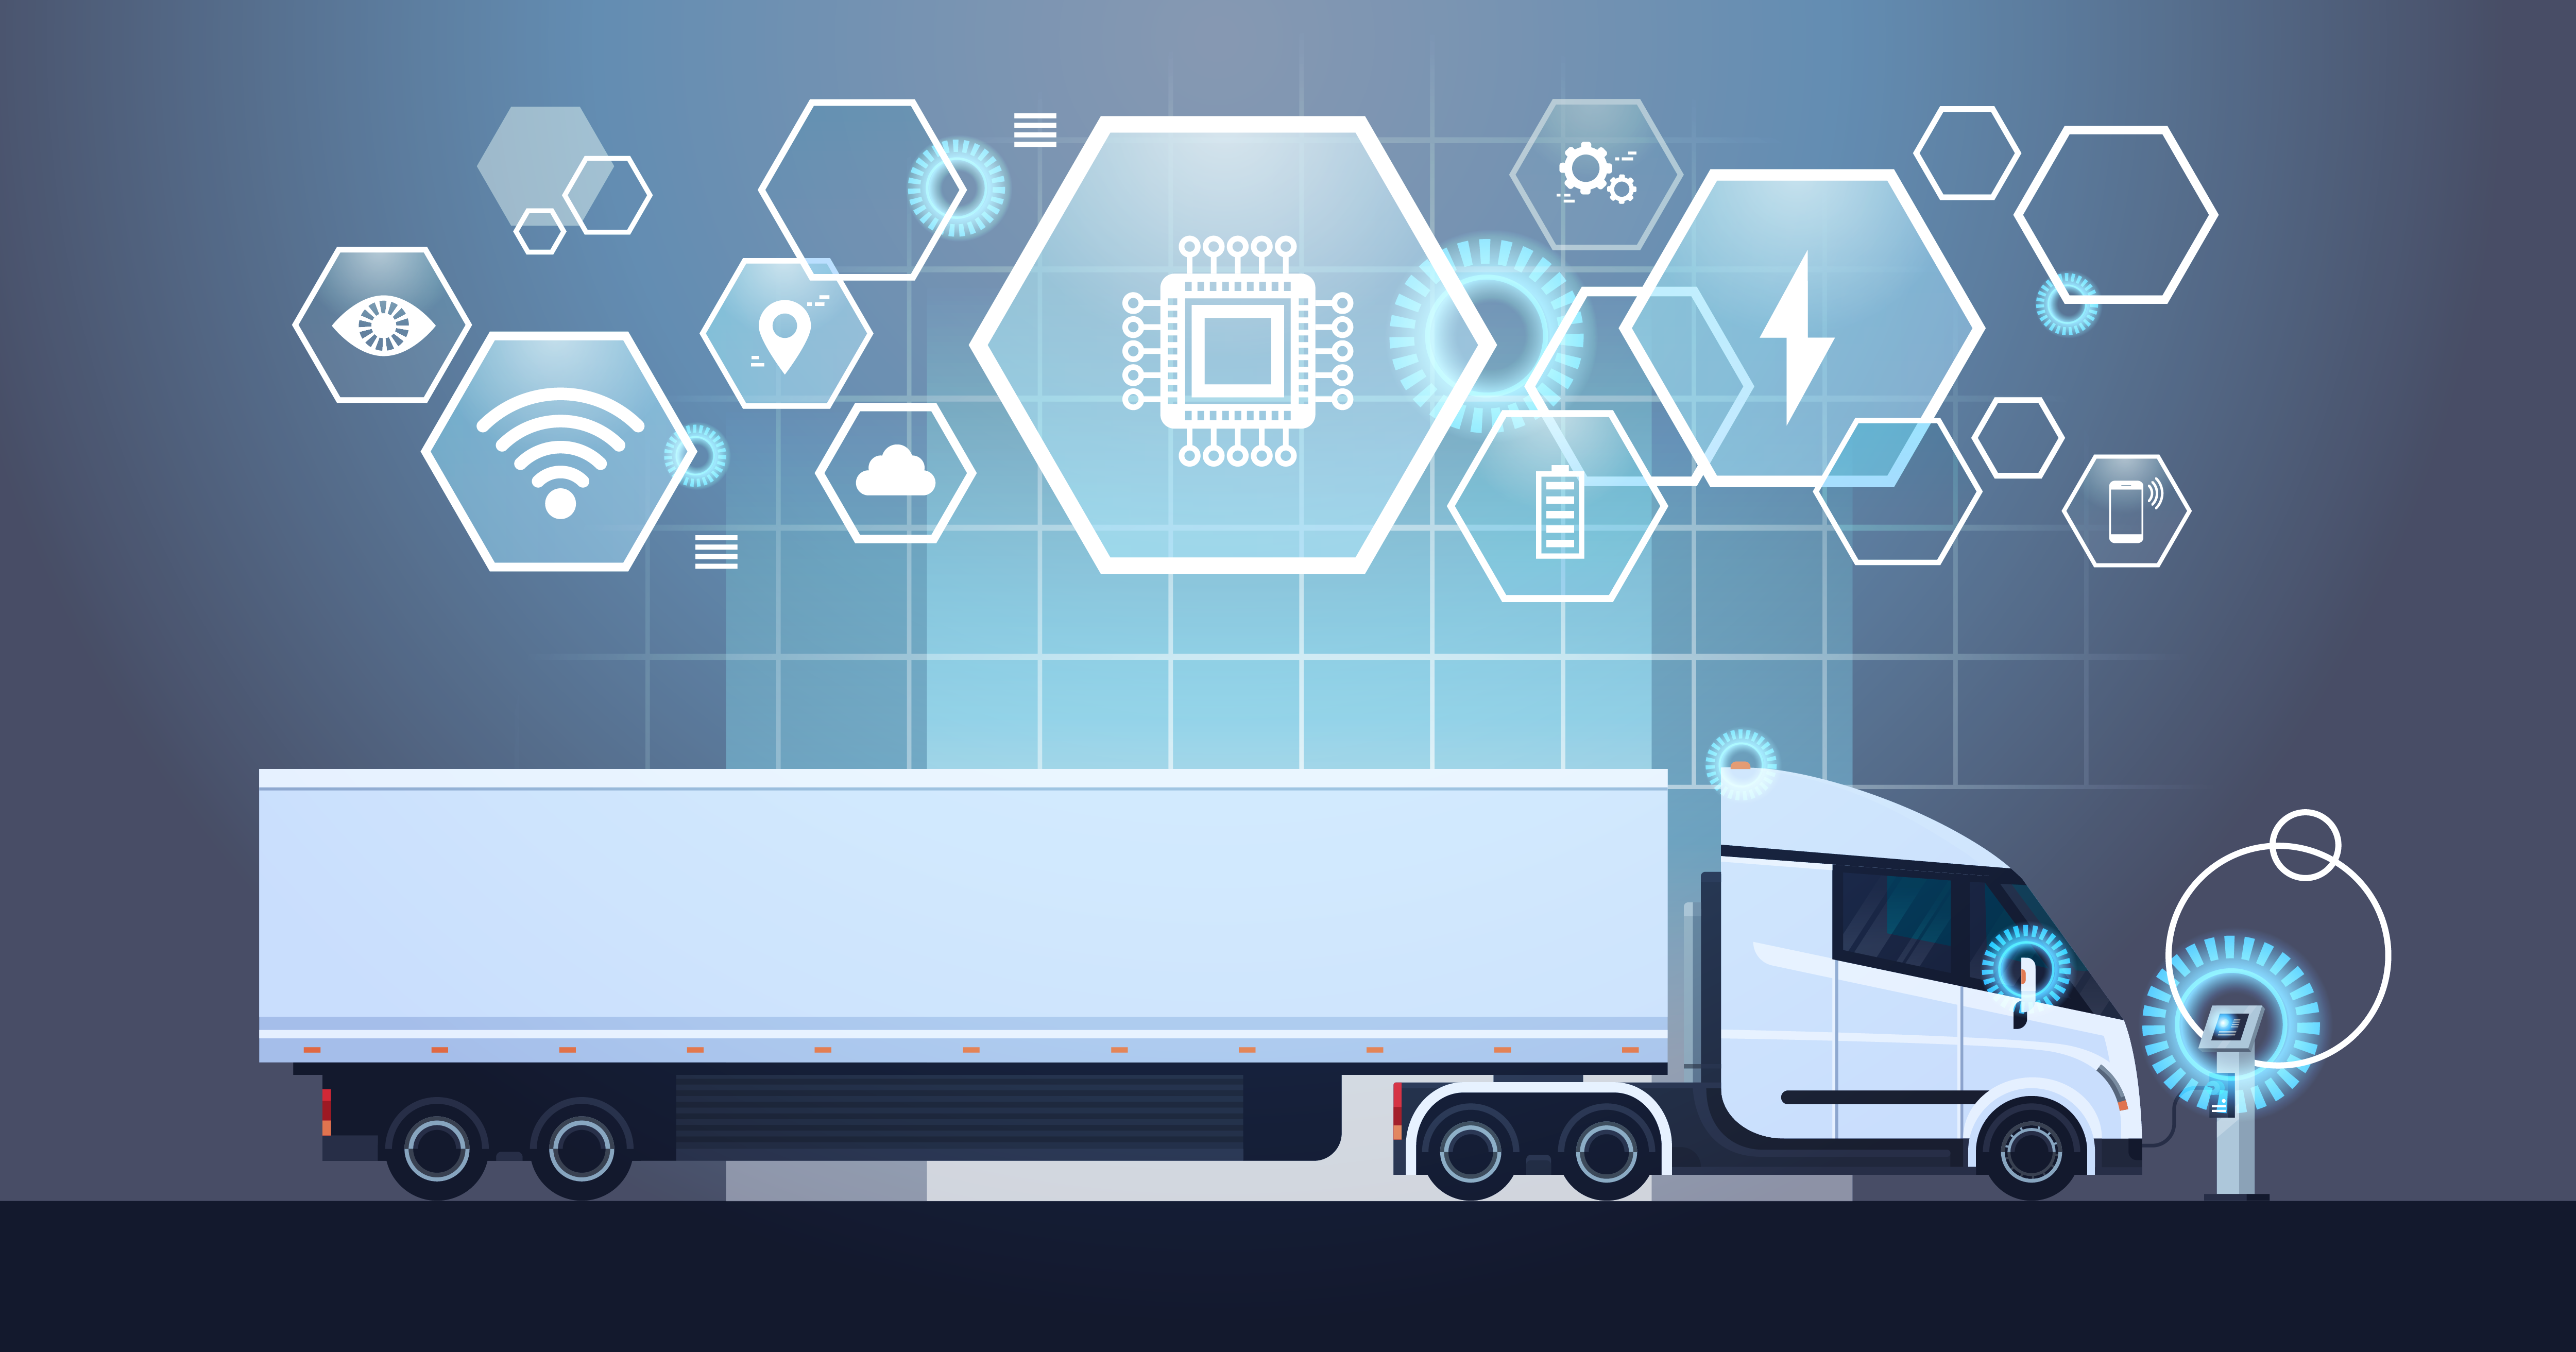 Big-Rigs May Win the Race for Autonomous Vehicles - The road ahead for autonomous vehicles